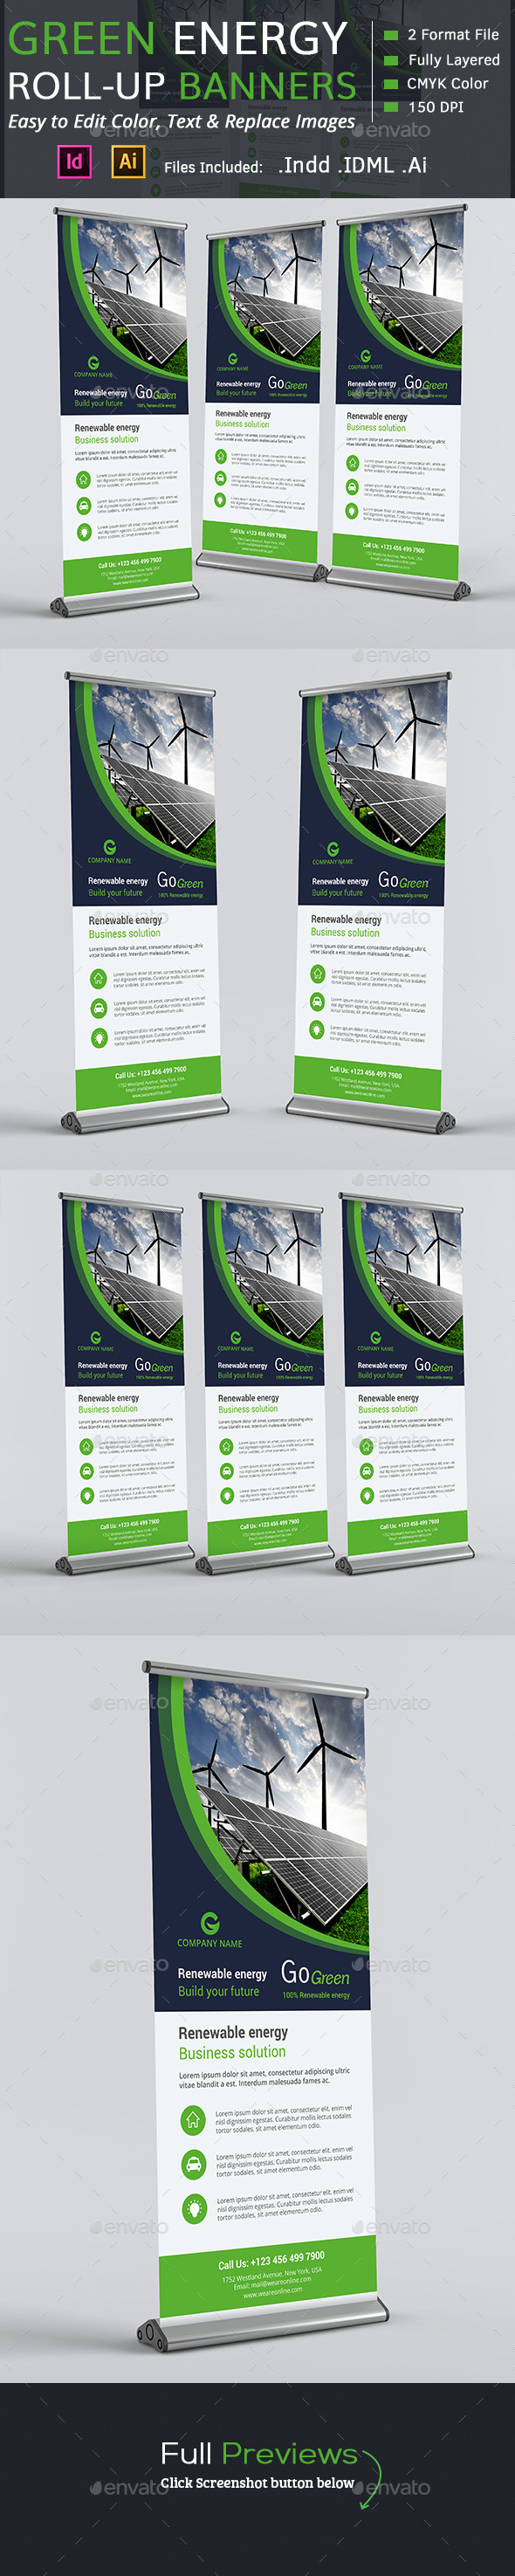 Green Energy Roll-up Banners - Signage Print Templates